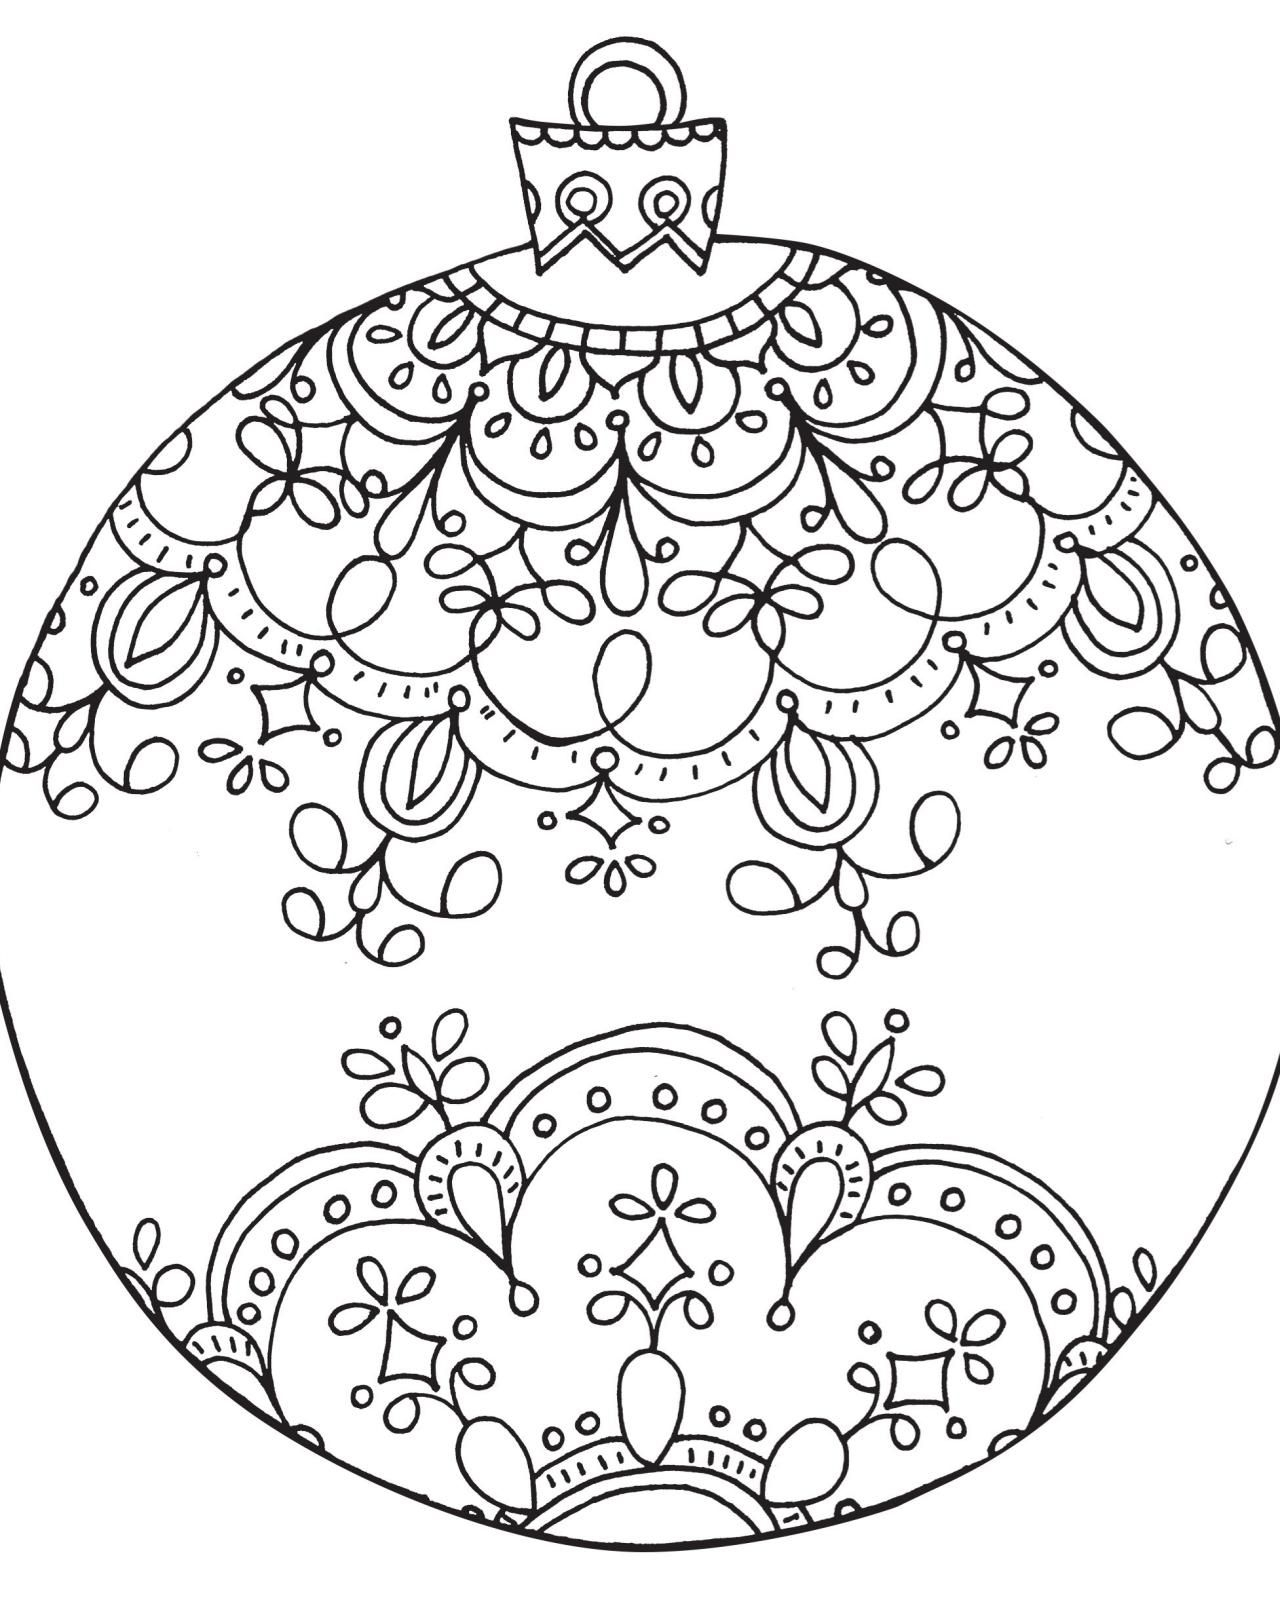 1280x1600 Free Printable Coloring Pages For Adults Printable